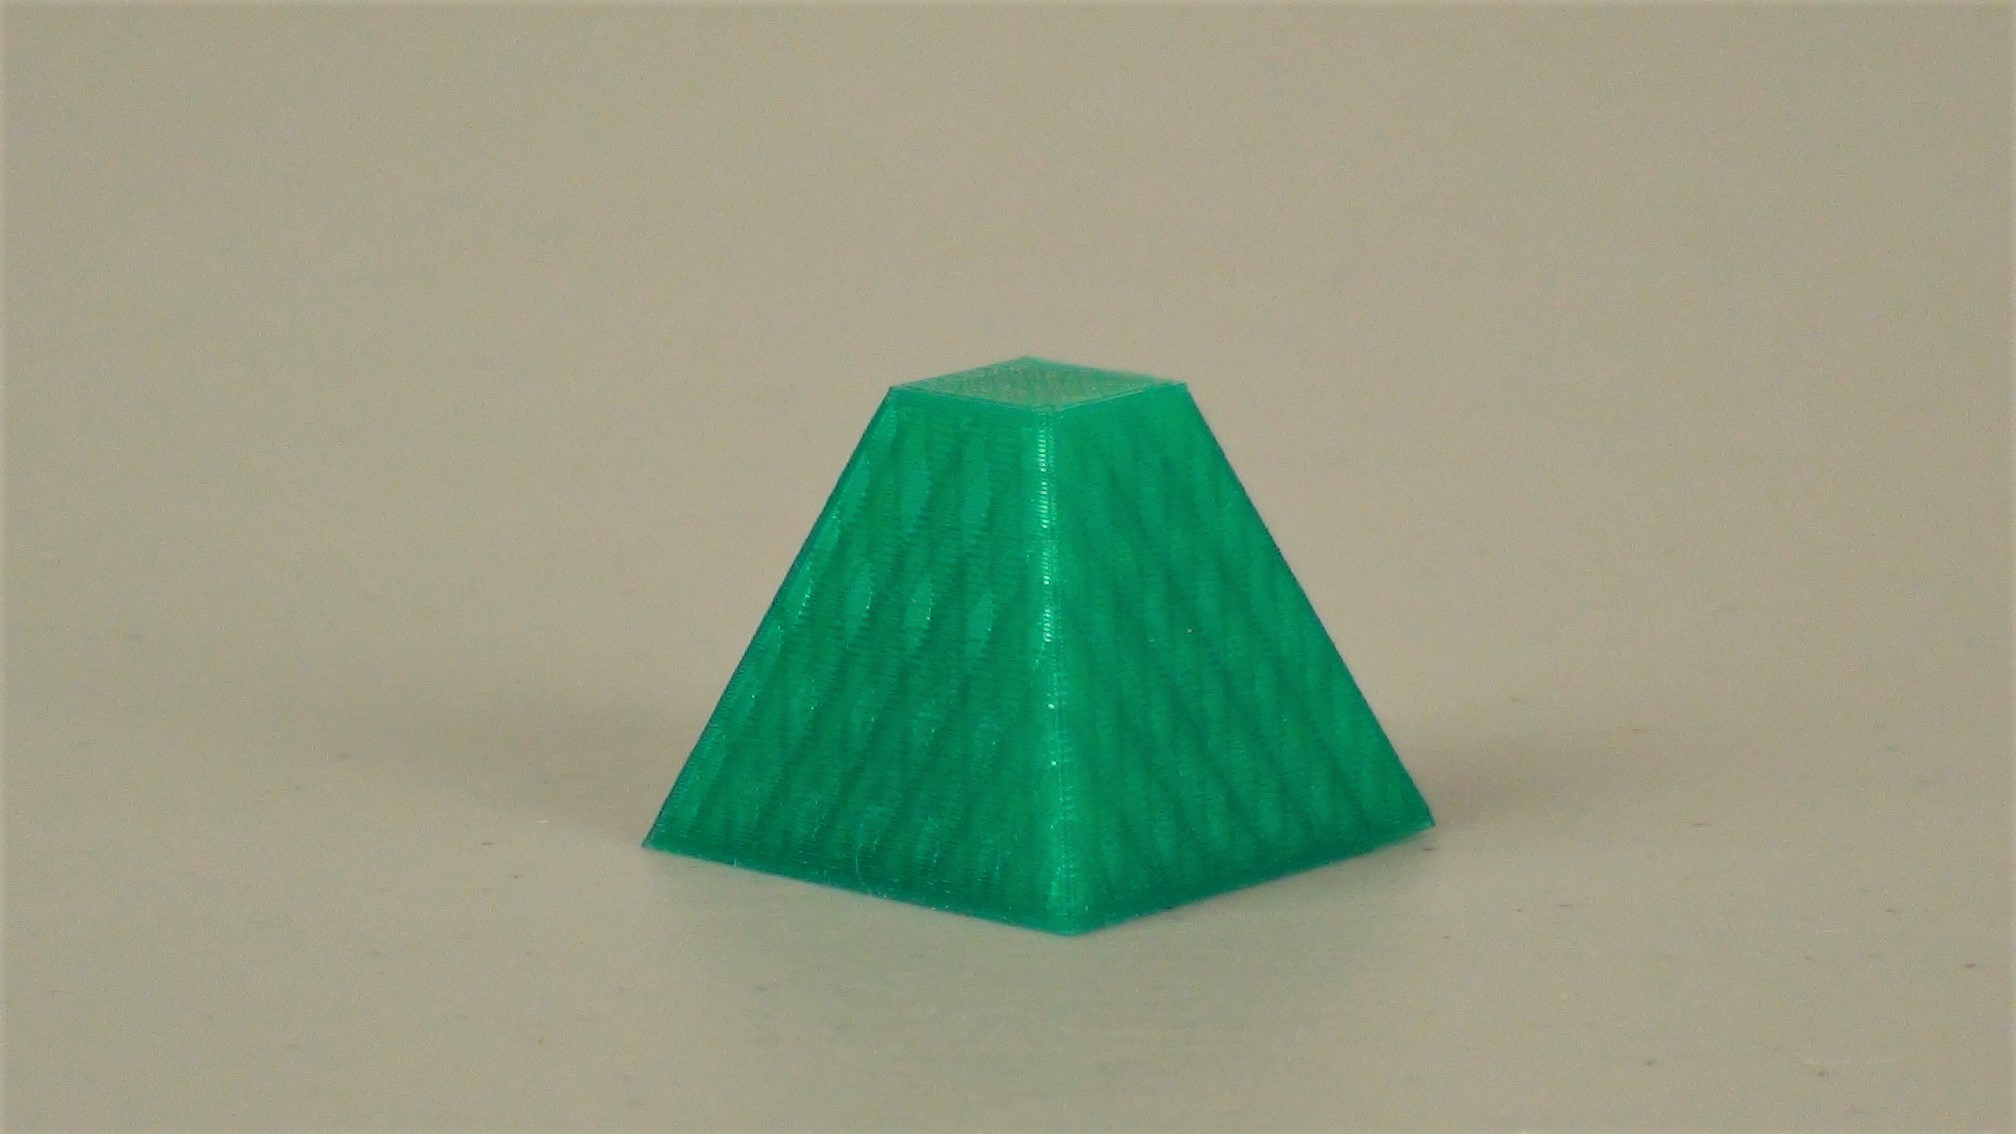 Cura's Triangles Infill